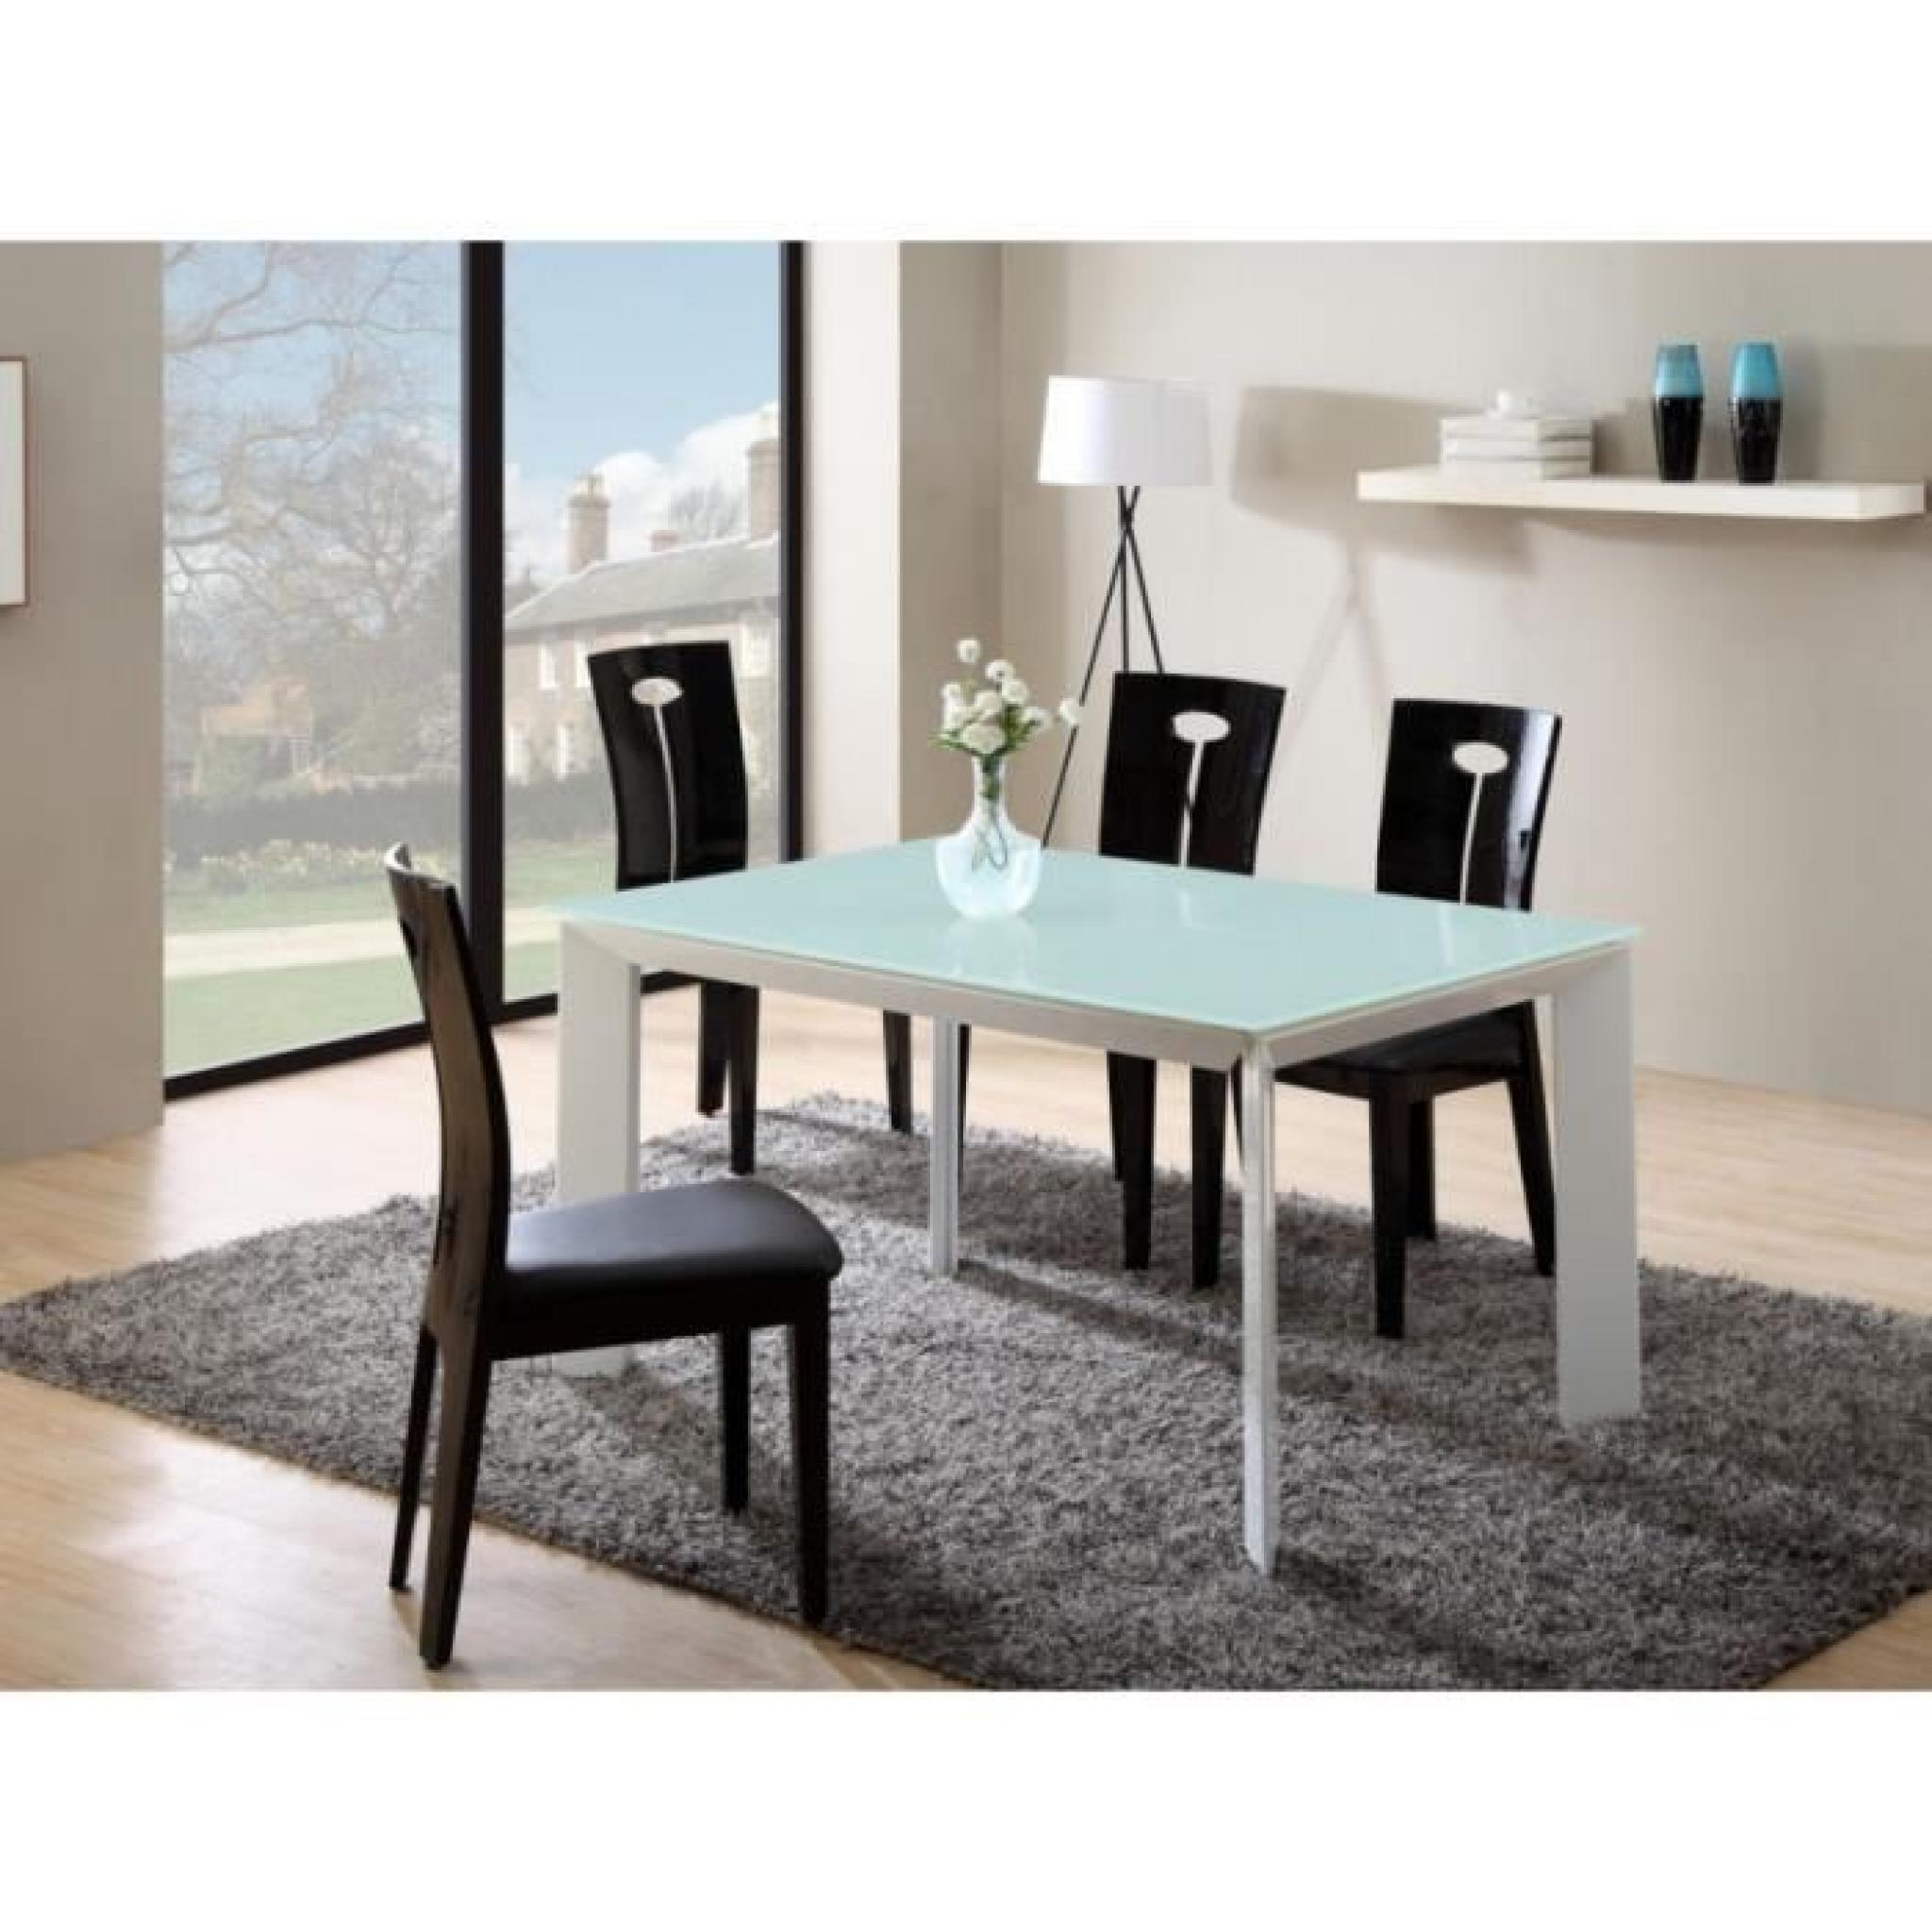 Table Extensible Arielle 6 à 8 Couverts Mdf Verre Trempé